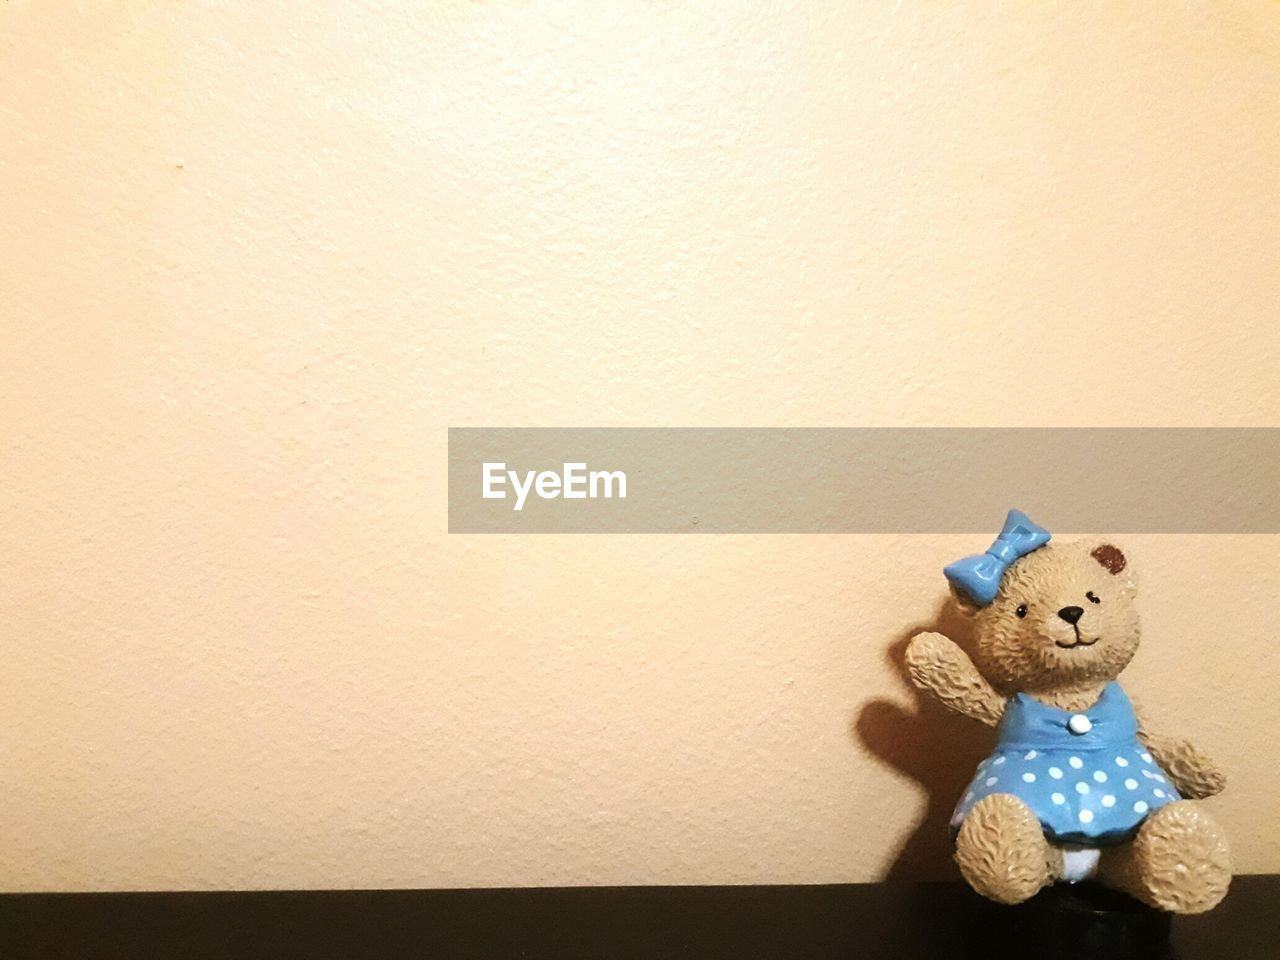 toy, animal representation, stuffed toy, teddy bear, no people, copy space, indoors, childhood, close-up, day